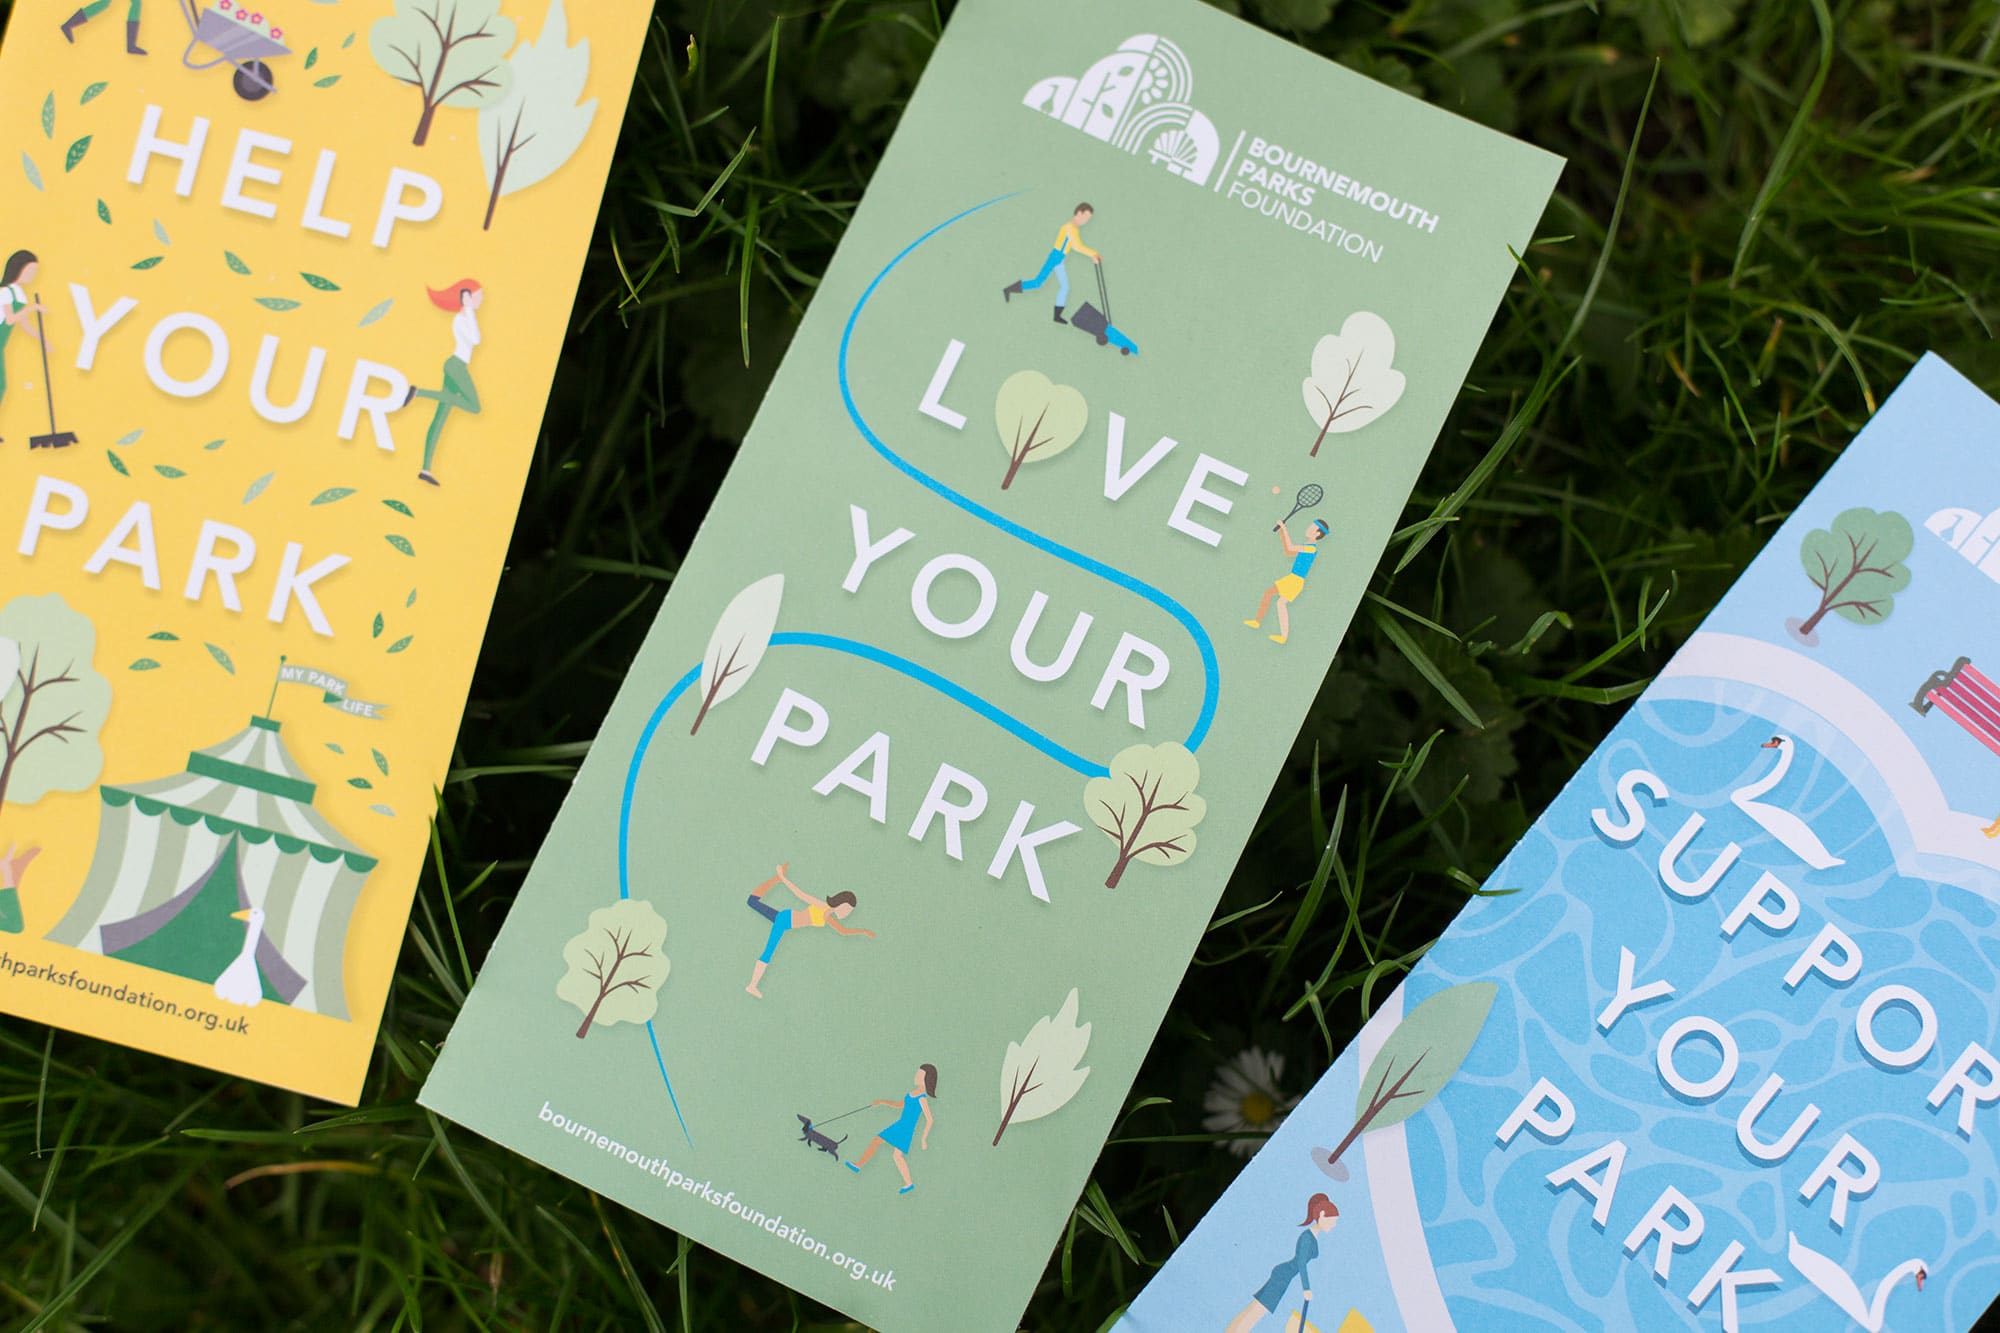 Bournemouth Parks Foundation design and print